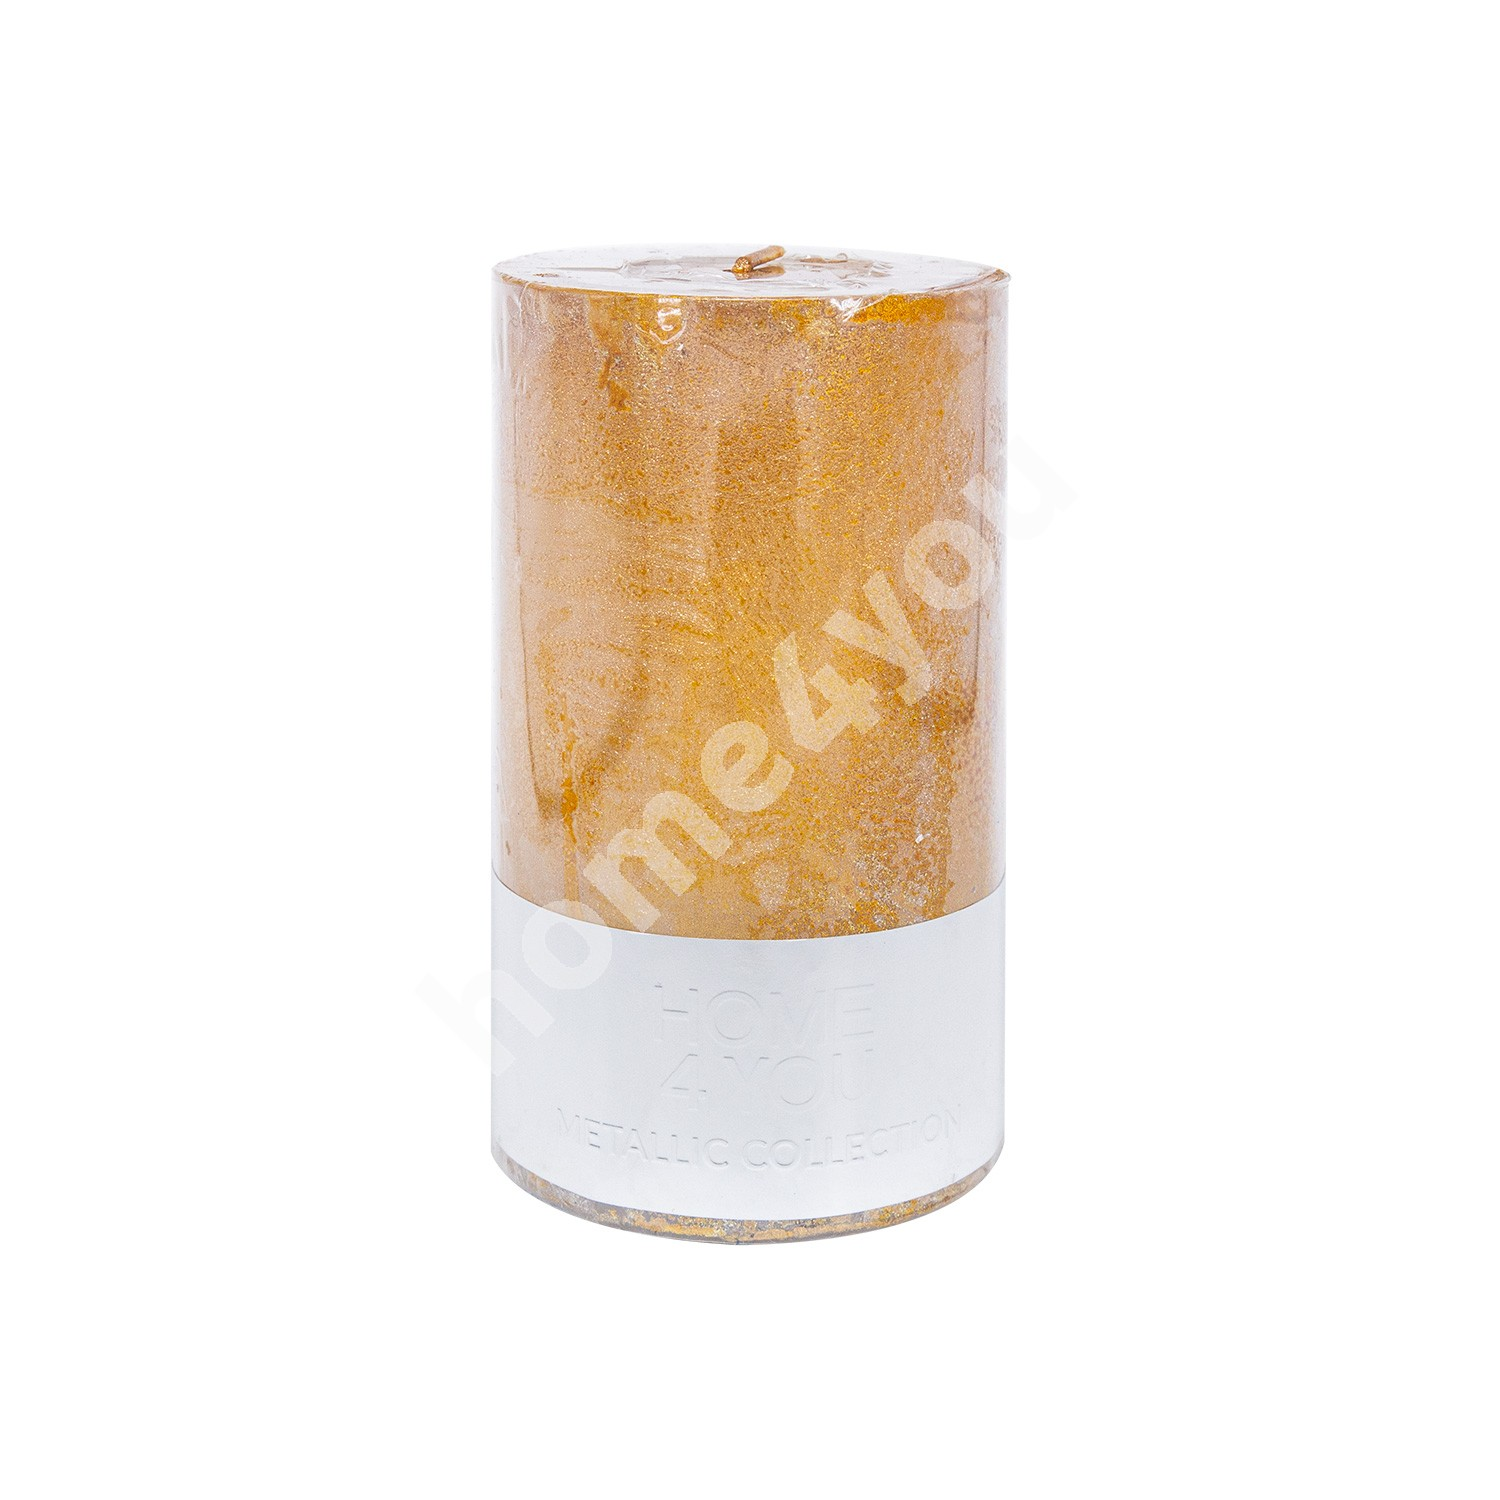 Candle LUXO, D6.8xH12cm, gold metallic ( no scent)